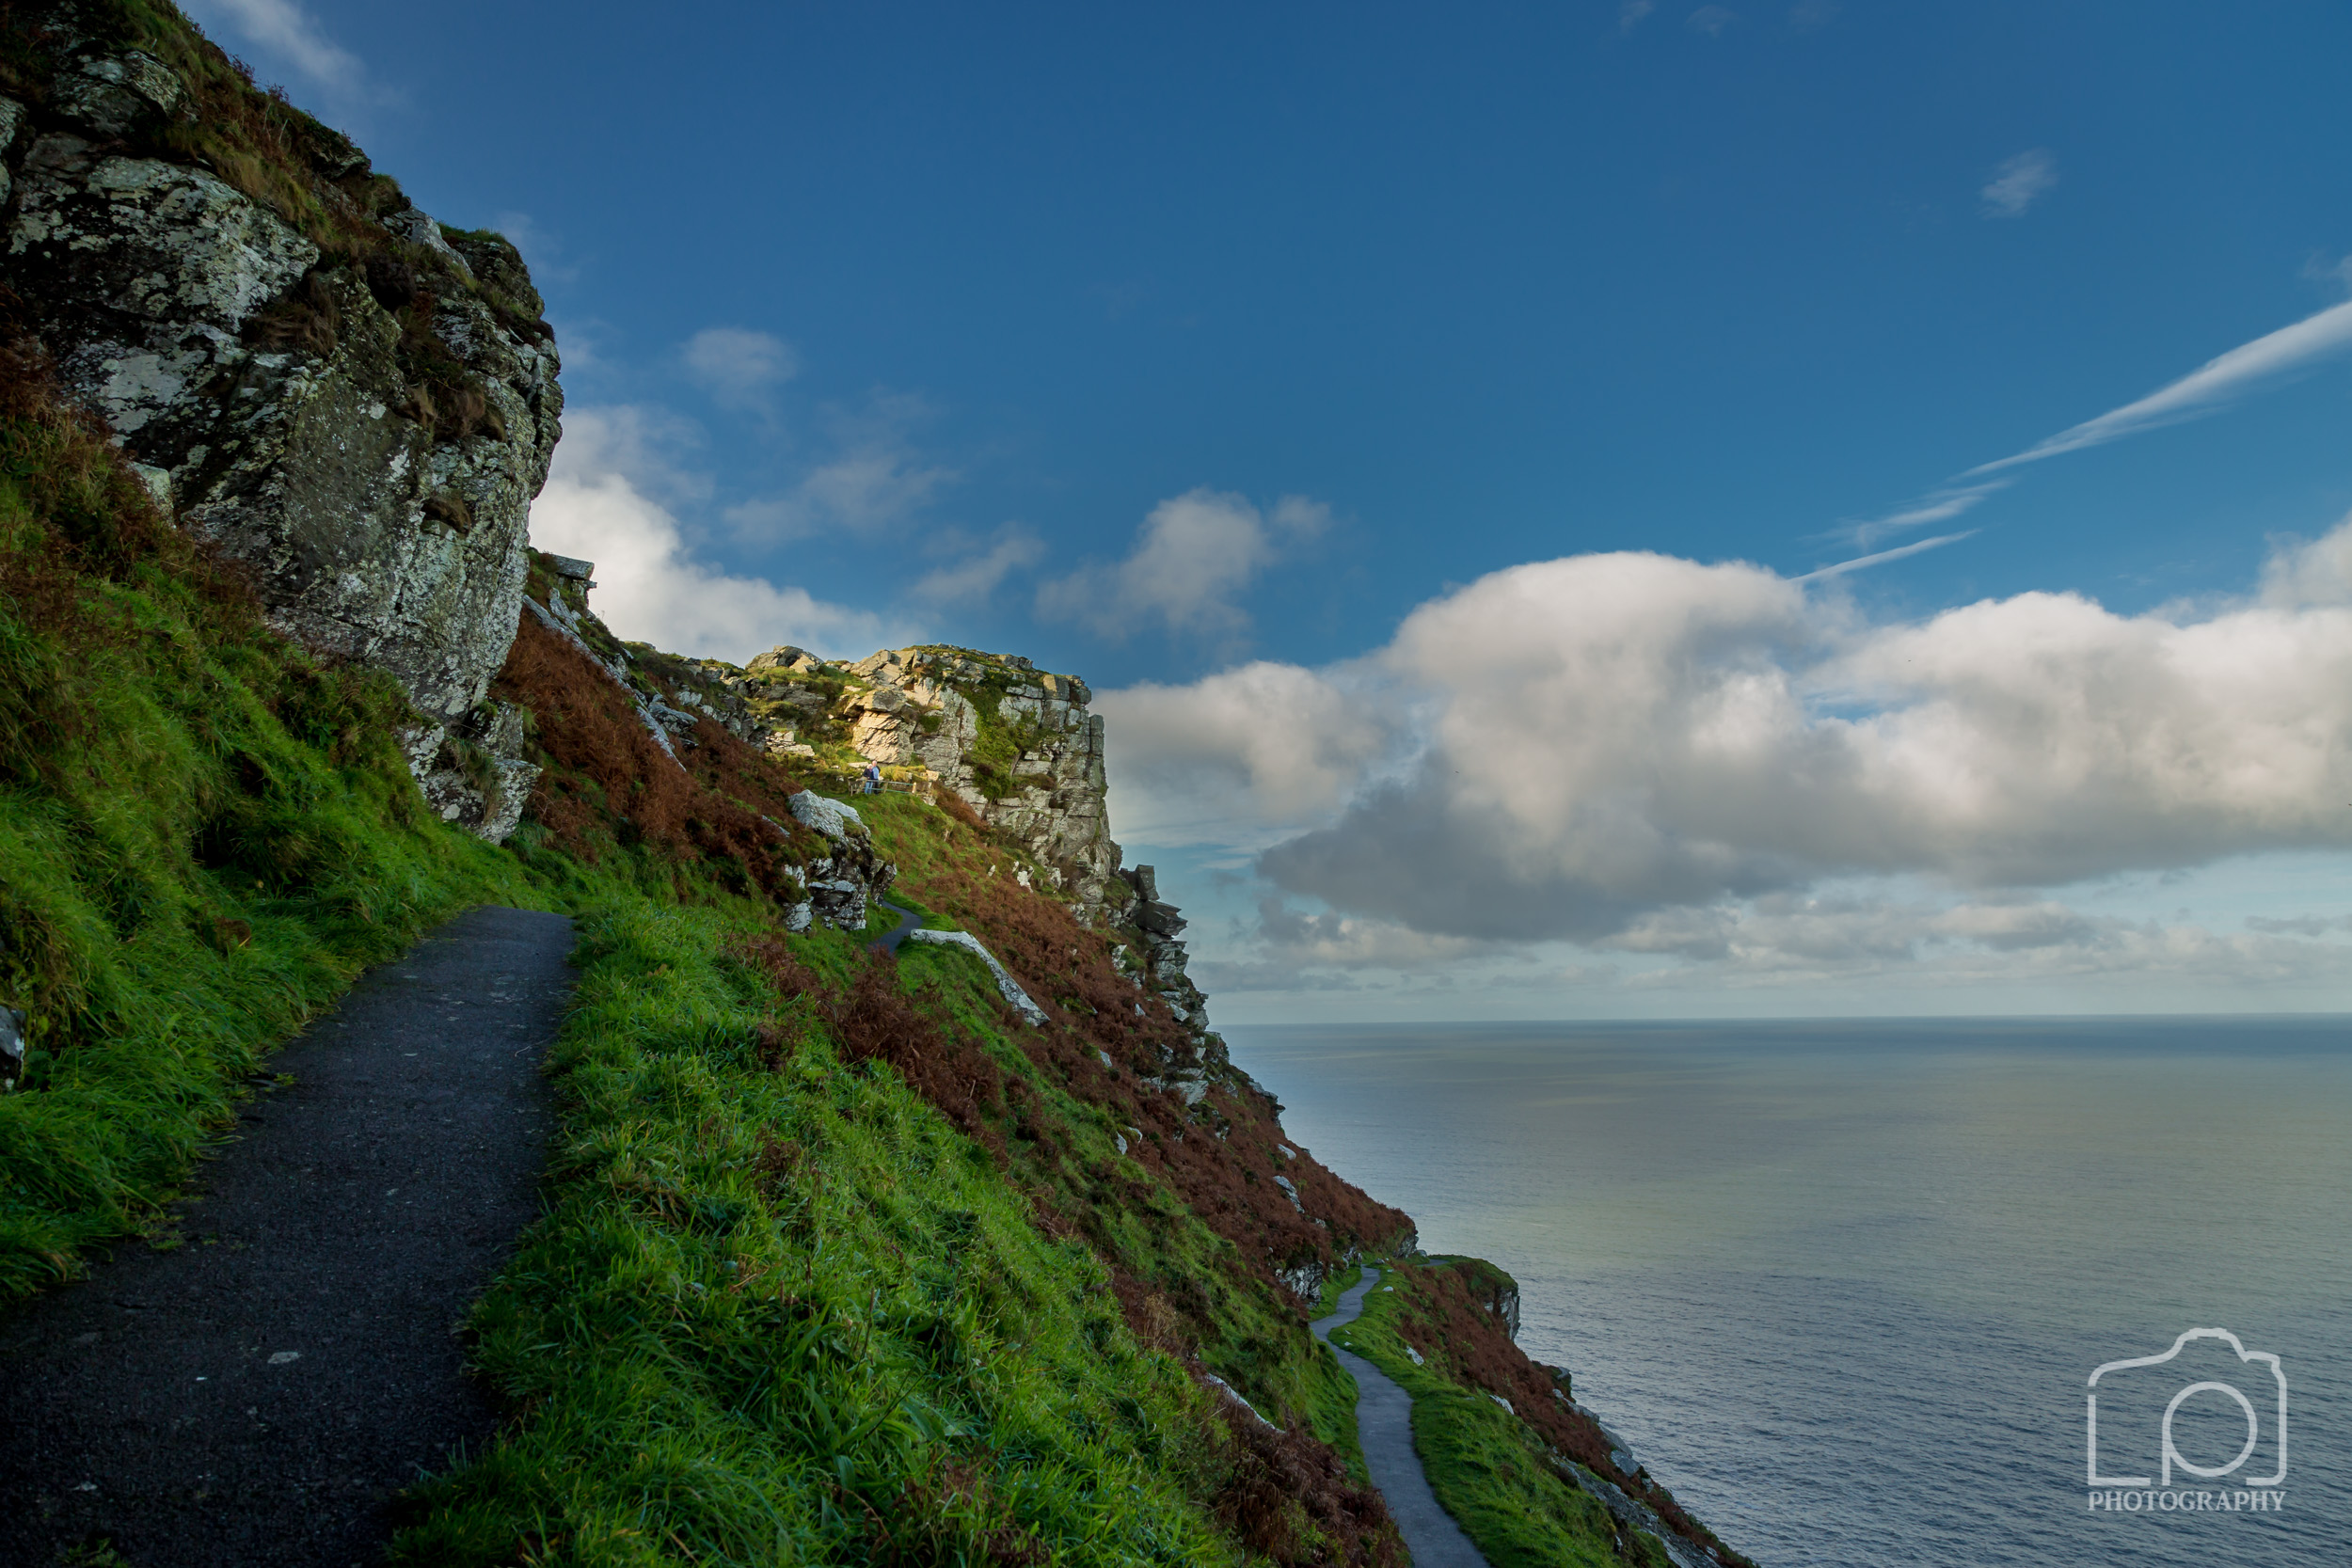 Coastal Footpath from Lynton to Valley of the Rocks